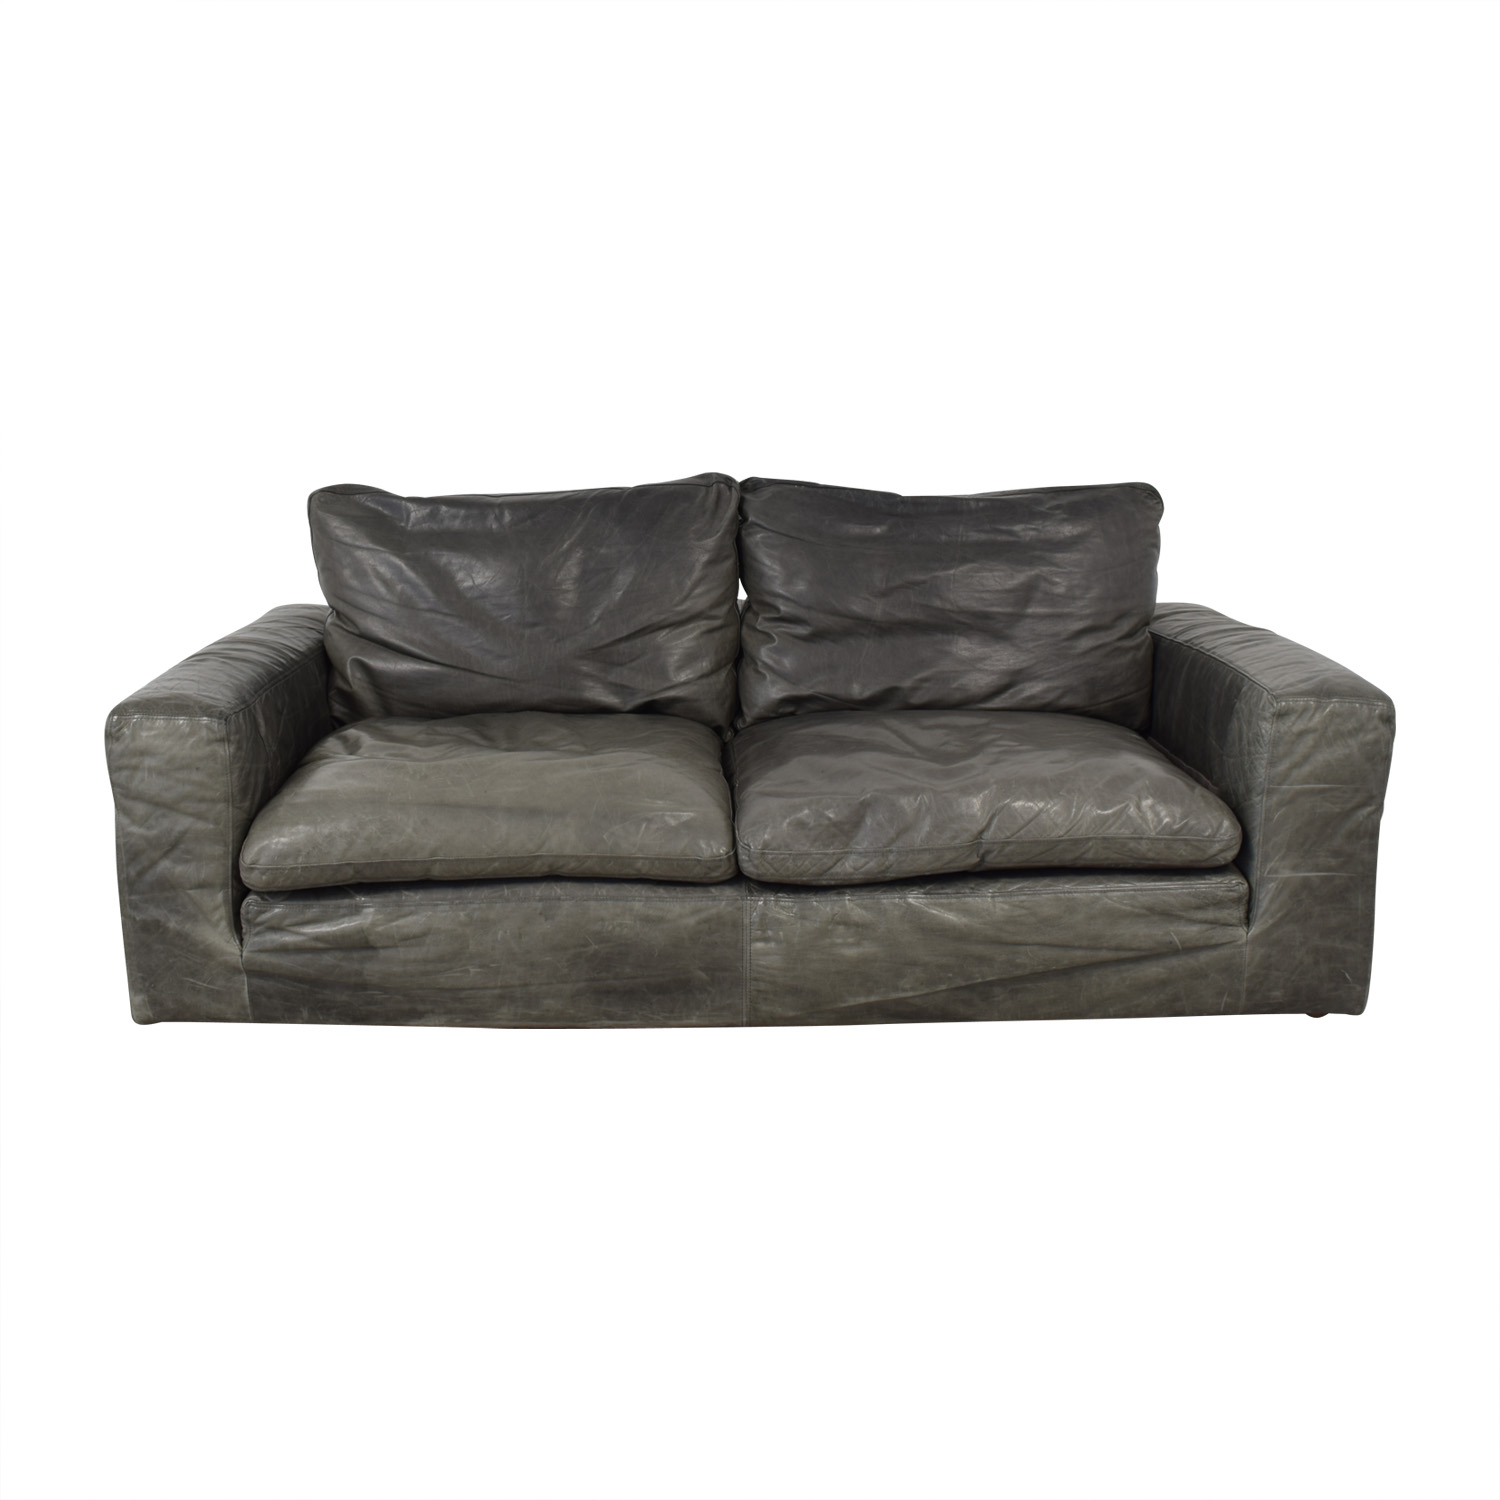 Restoration Hardware Restoration Hardware Cloud Leather Two-Seat-Cushion Sofa second hand